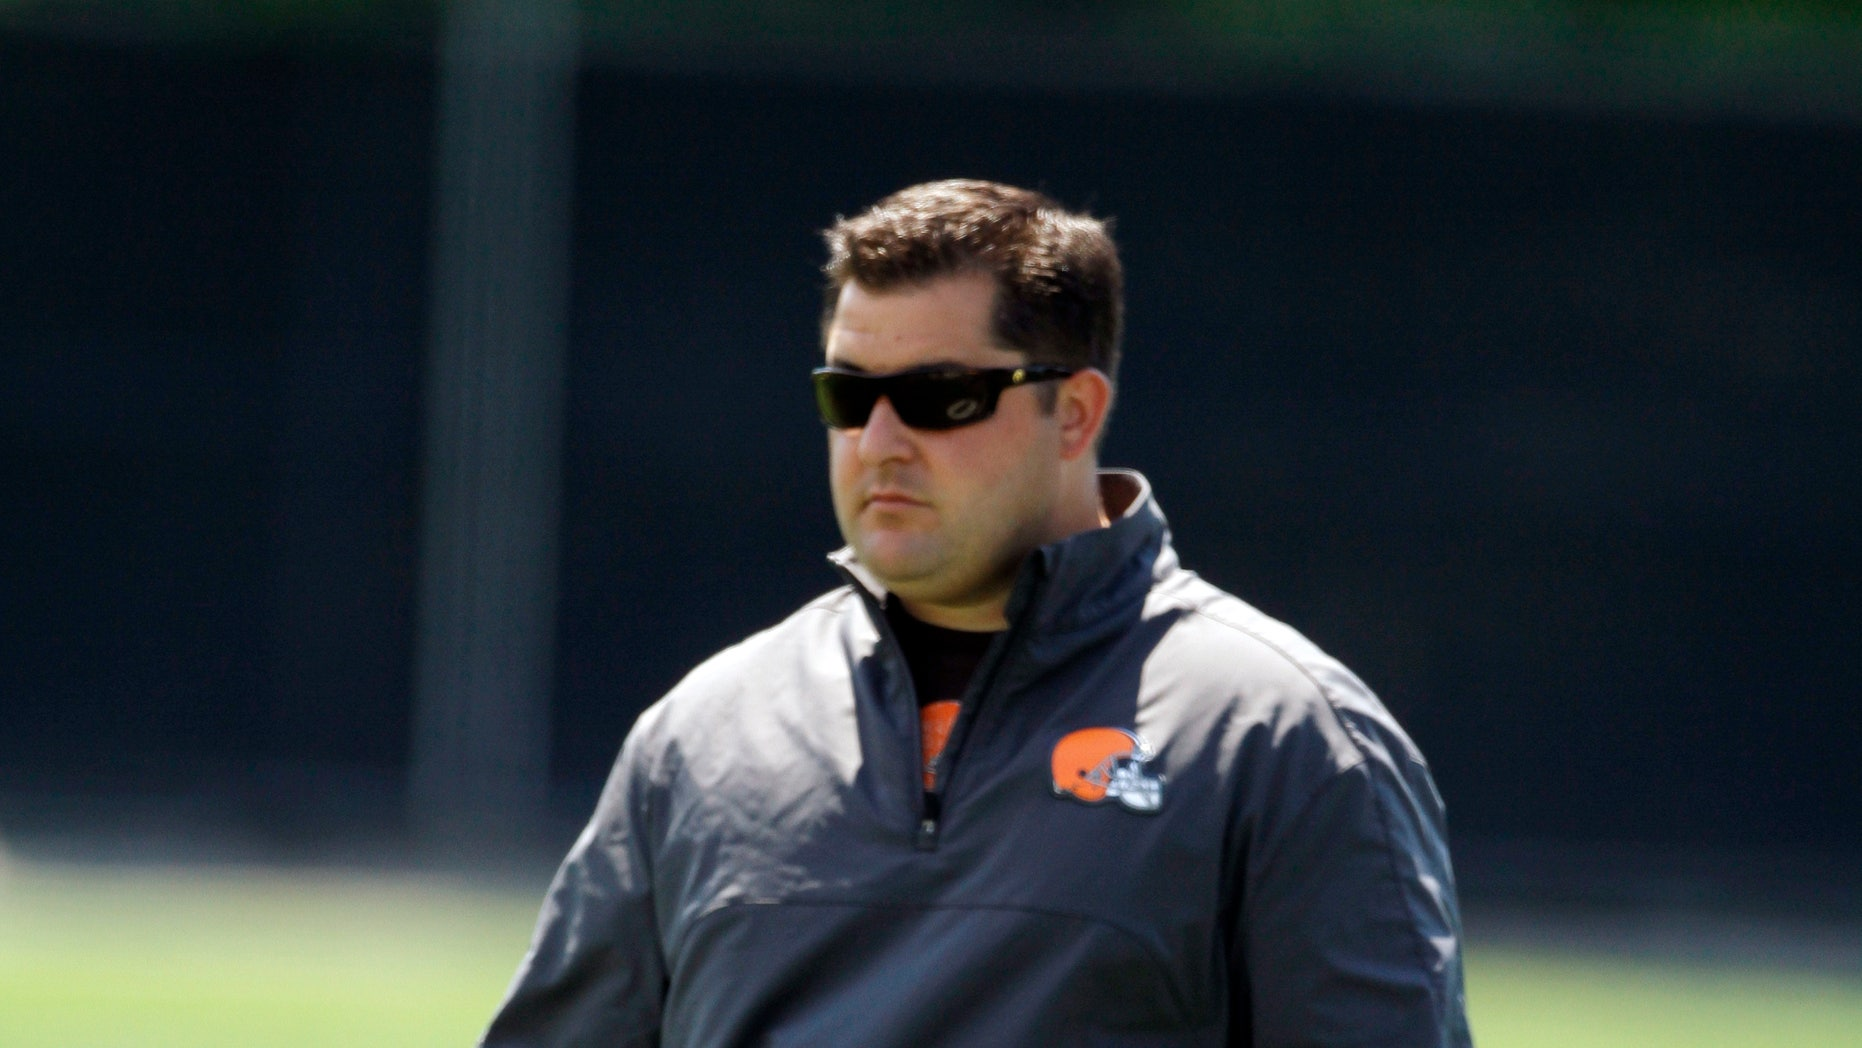 In this June 7, 2012 photo, Cleveland Browns director of player personnel Jon Sandusky watches an off-season practice at the NFL football team's headquarters in Berea, Ohio. Jon Sandusky, the son of former Penn State assistant coach Jerry Sandusky, was arrested early Tuesday morning, Oct. 8, 2013, on suspicion of drunken driving. Fargo, N.D. police Lt. Joel Vettel told The Forum of Fargo-Moorhead that an officer spotted Jon Sandusky, 36, making an illegal turn. The officer pulled Sandusky over and decided he was driving under the influence after administering field sobriety tests. (AP Photo/Mark Duncan)